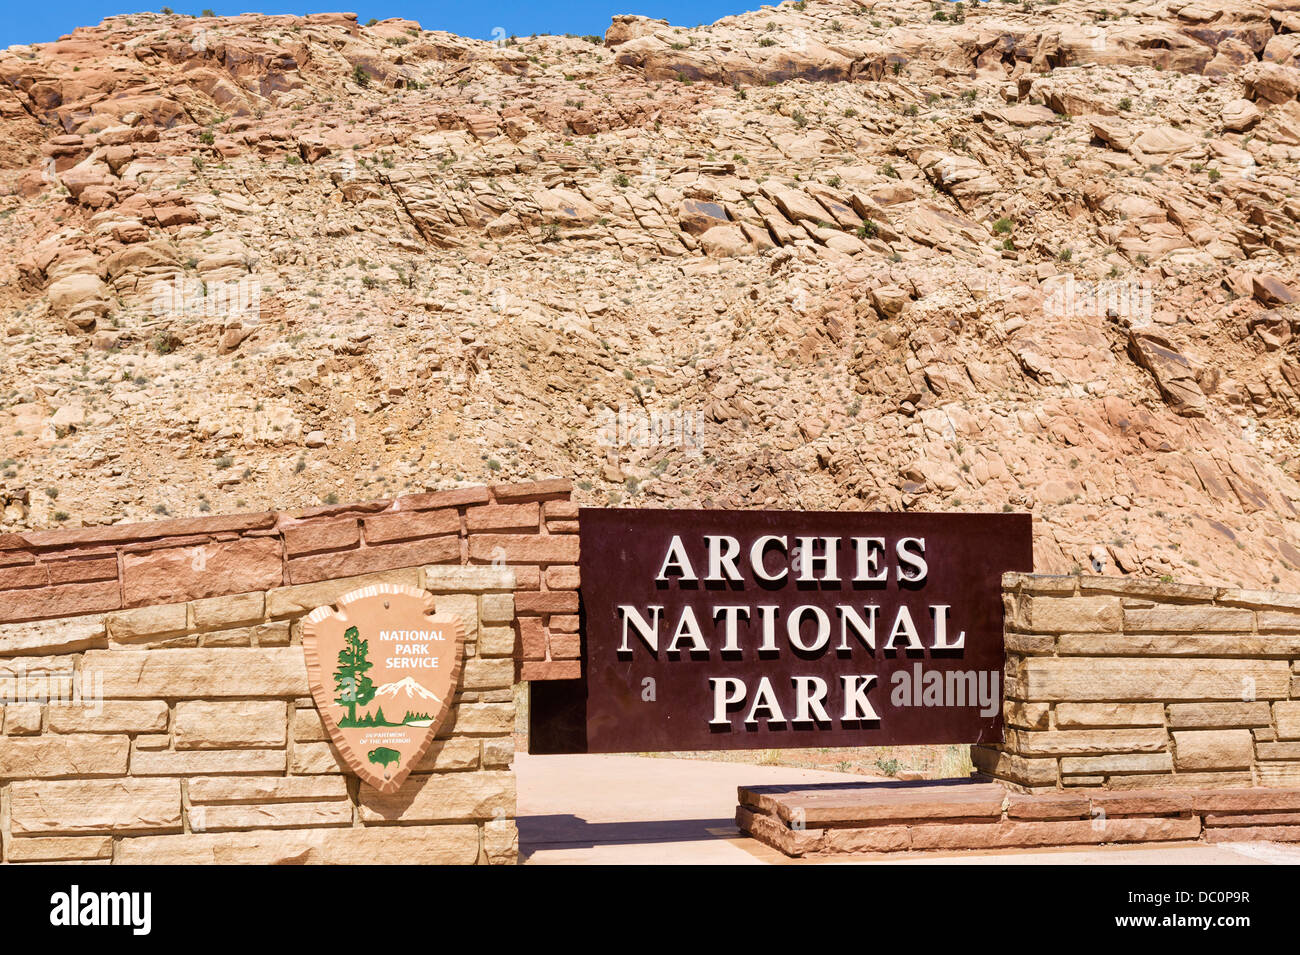 Entrance sign to Arches National Park, Utah, USA - Stock Image